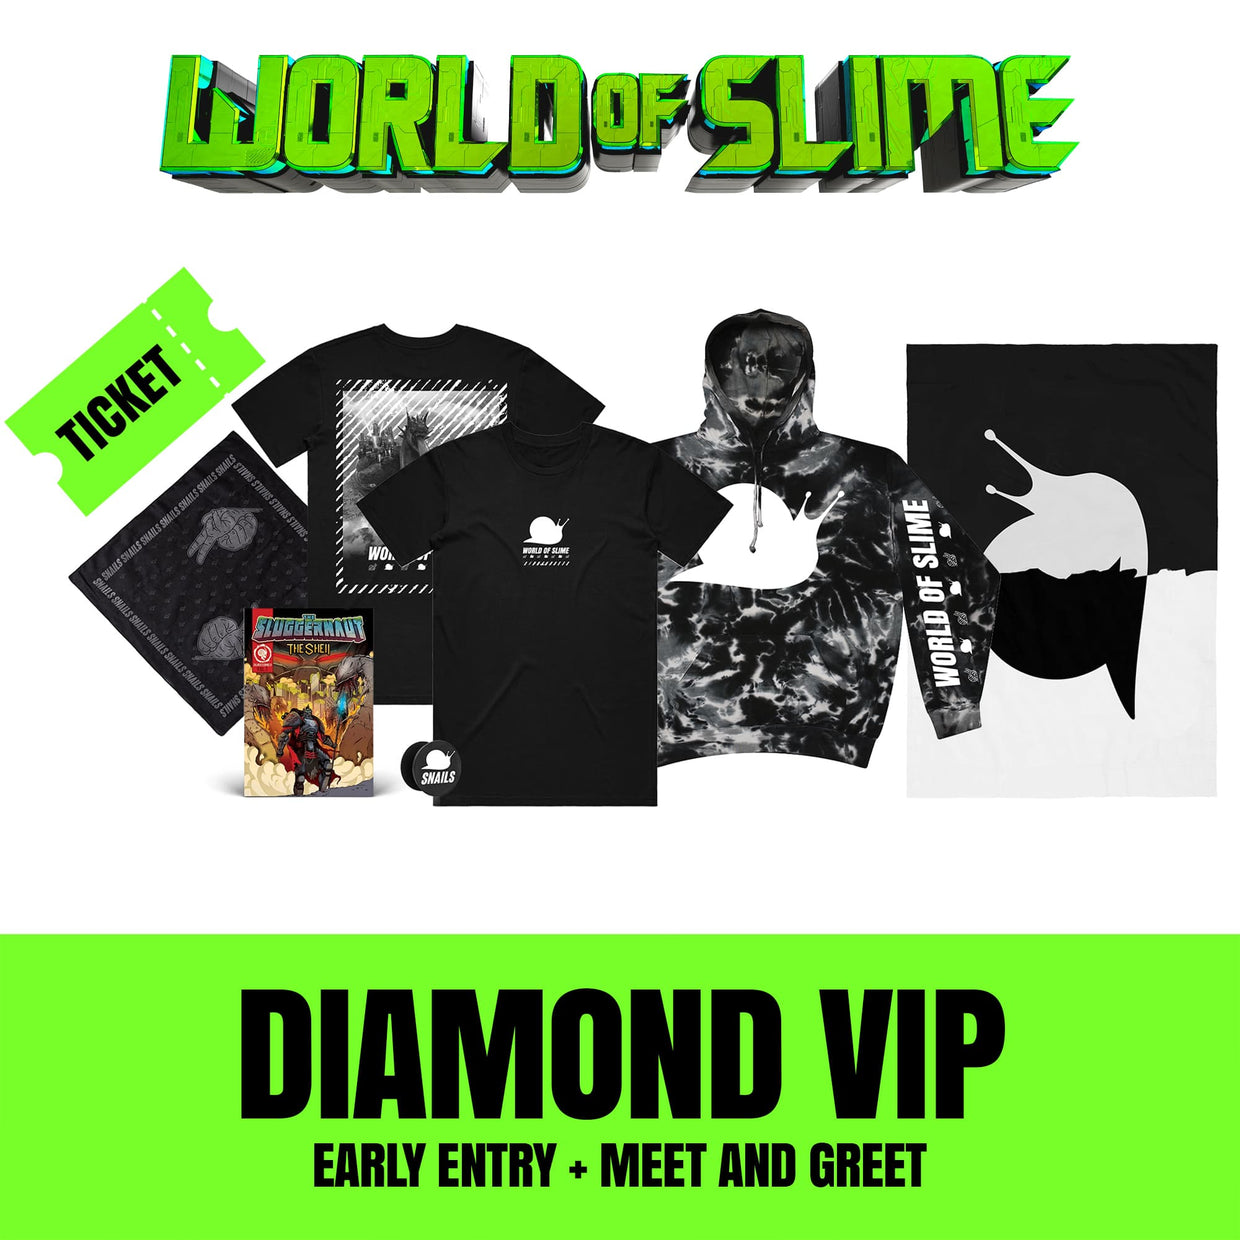 World Of Slime Tour - Kansas City, MO - 12/03